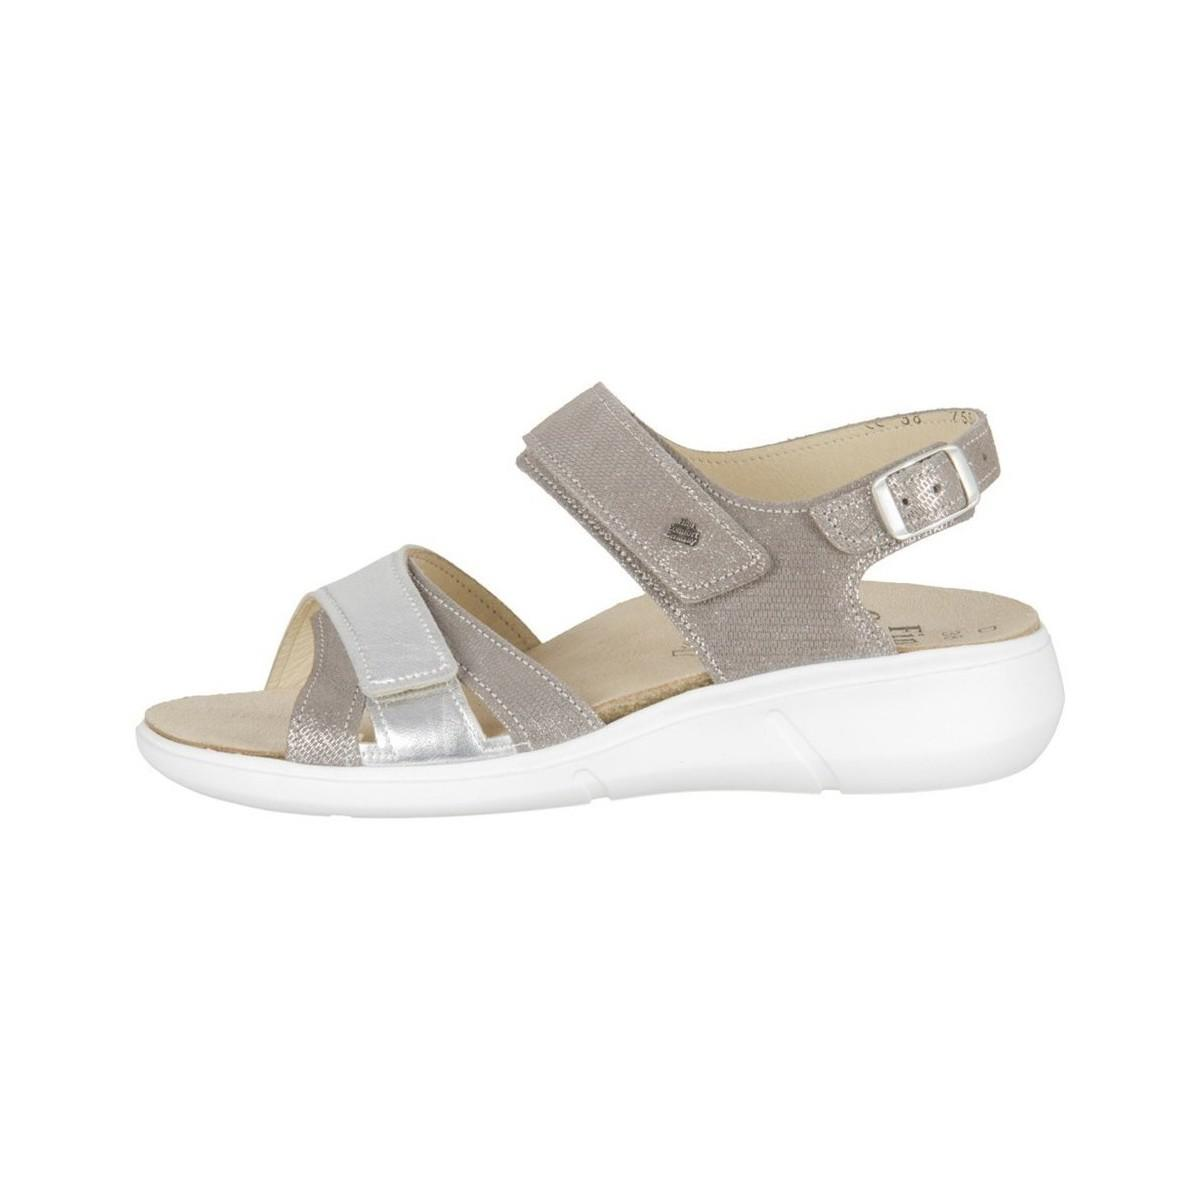 Pay With Visa For Sale Shopping Online High Quality Finn Nadi Fango Silber Campagnolo Simona women's Sandals in View For Sale Footlocker Cheap Online GaDJJ